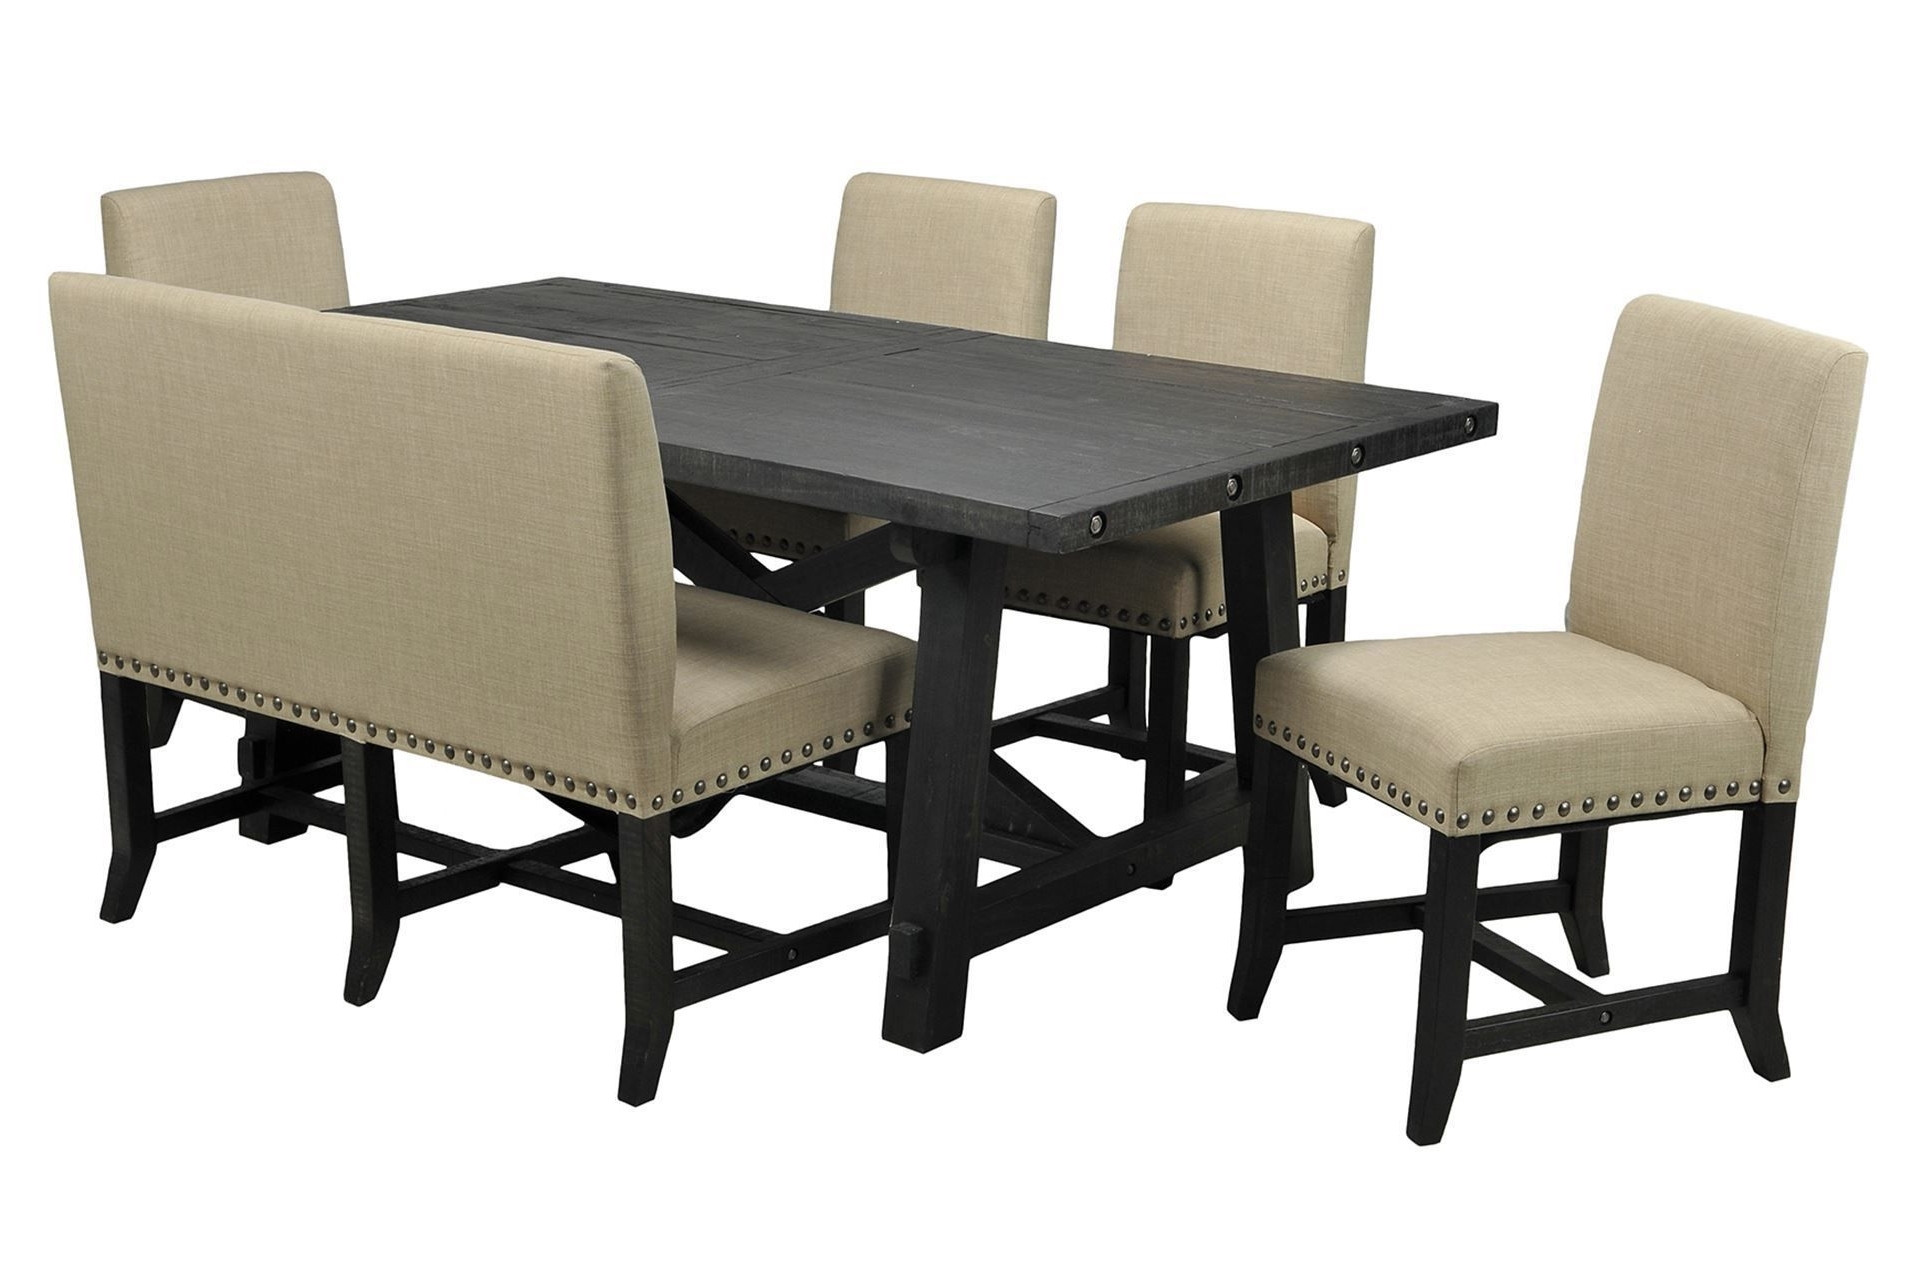 Most Recent Jaxon 6 Piece Rectangle Dining Sets With Bench & Wood Chairs Intended For Jaxon 6 Piece Rectangle Dining Set W/bench & Uph Chairs (Gallery 2 of 25)